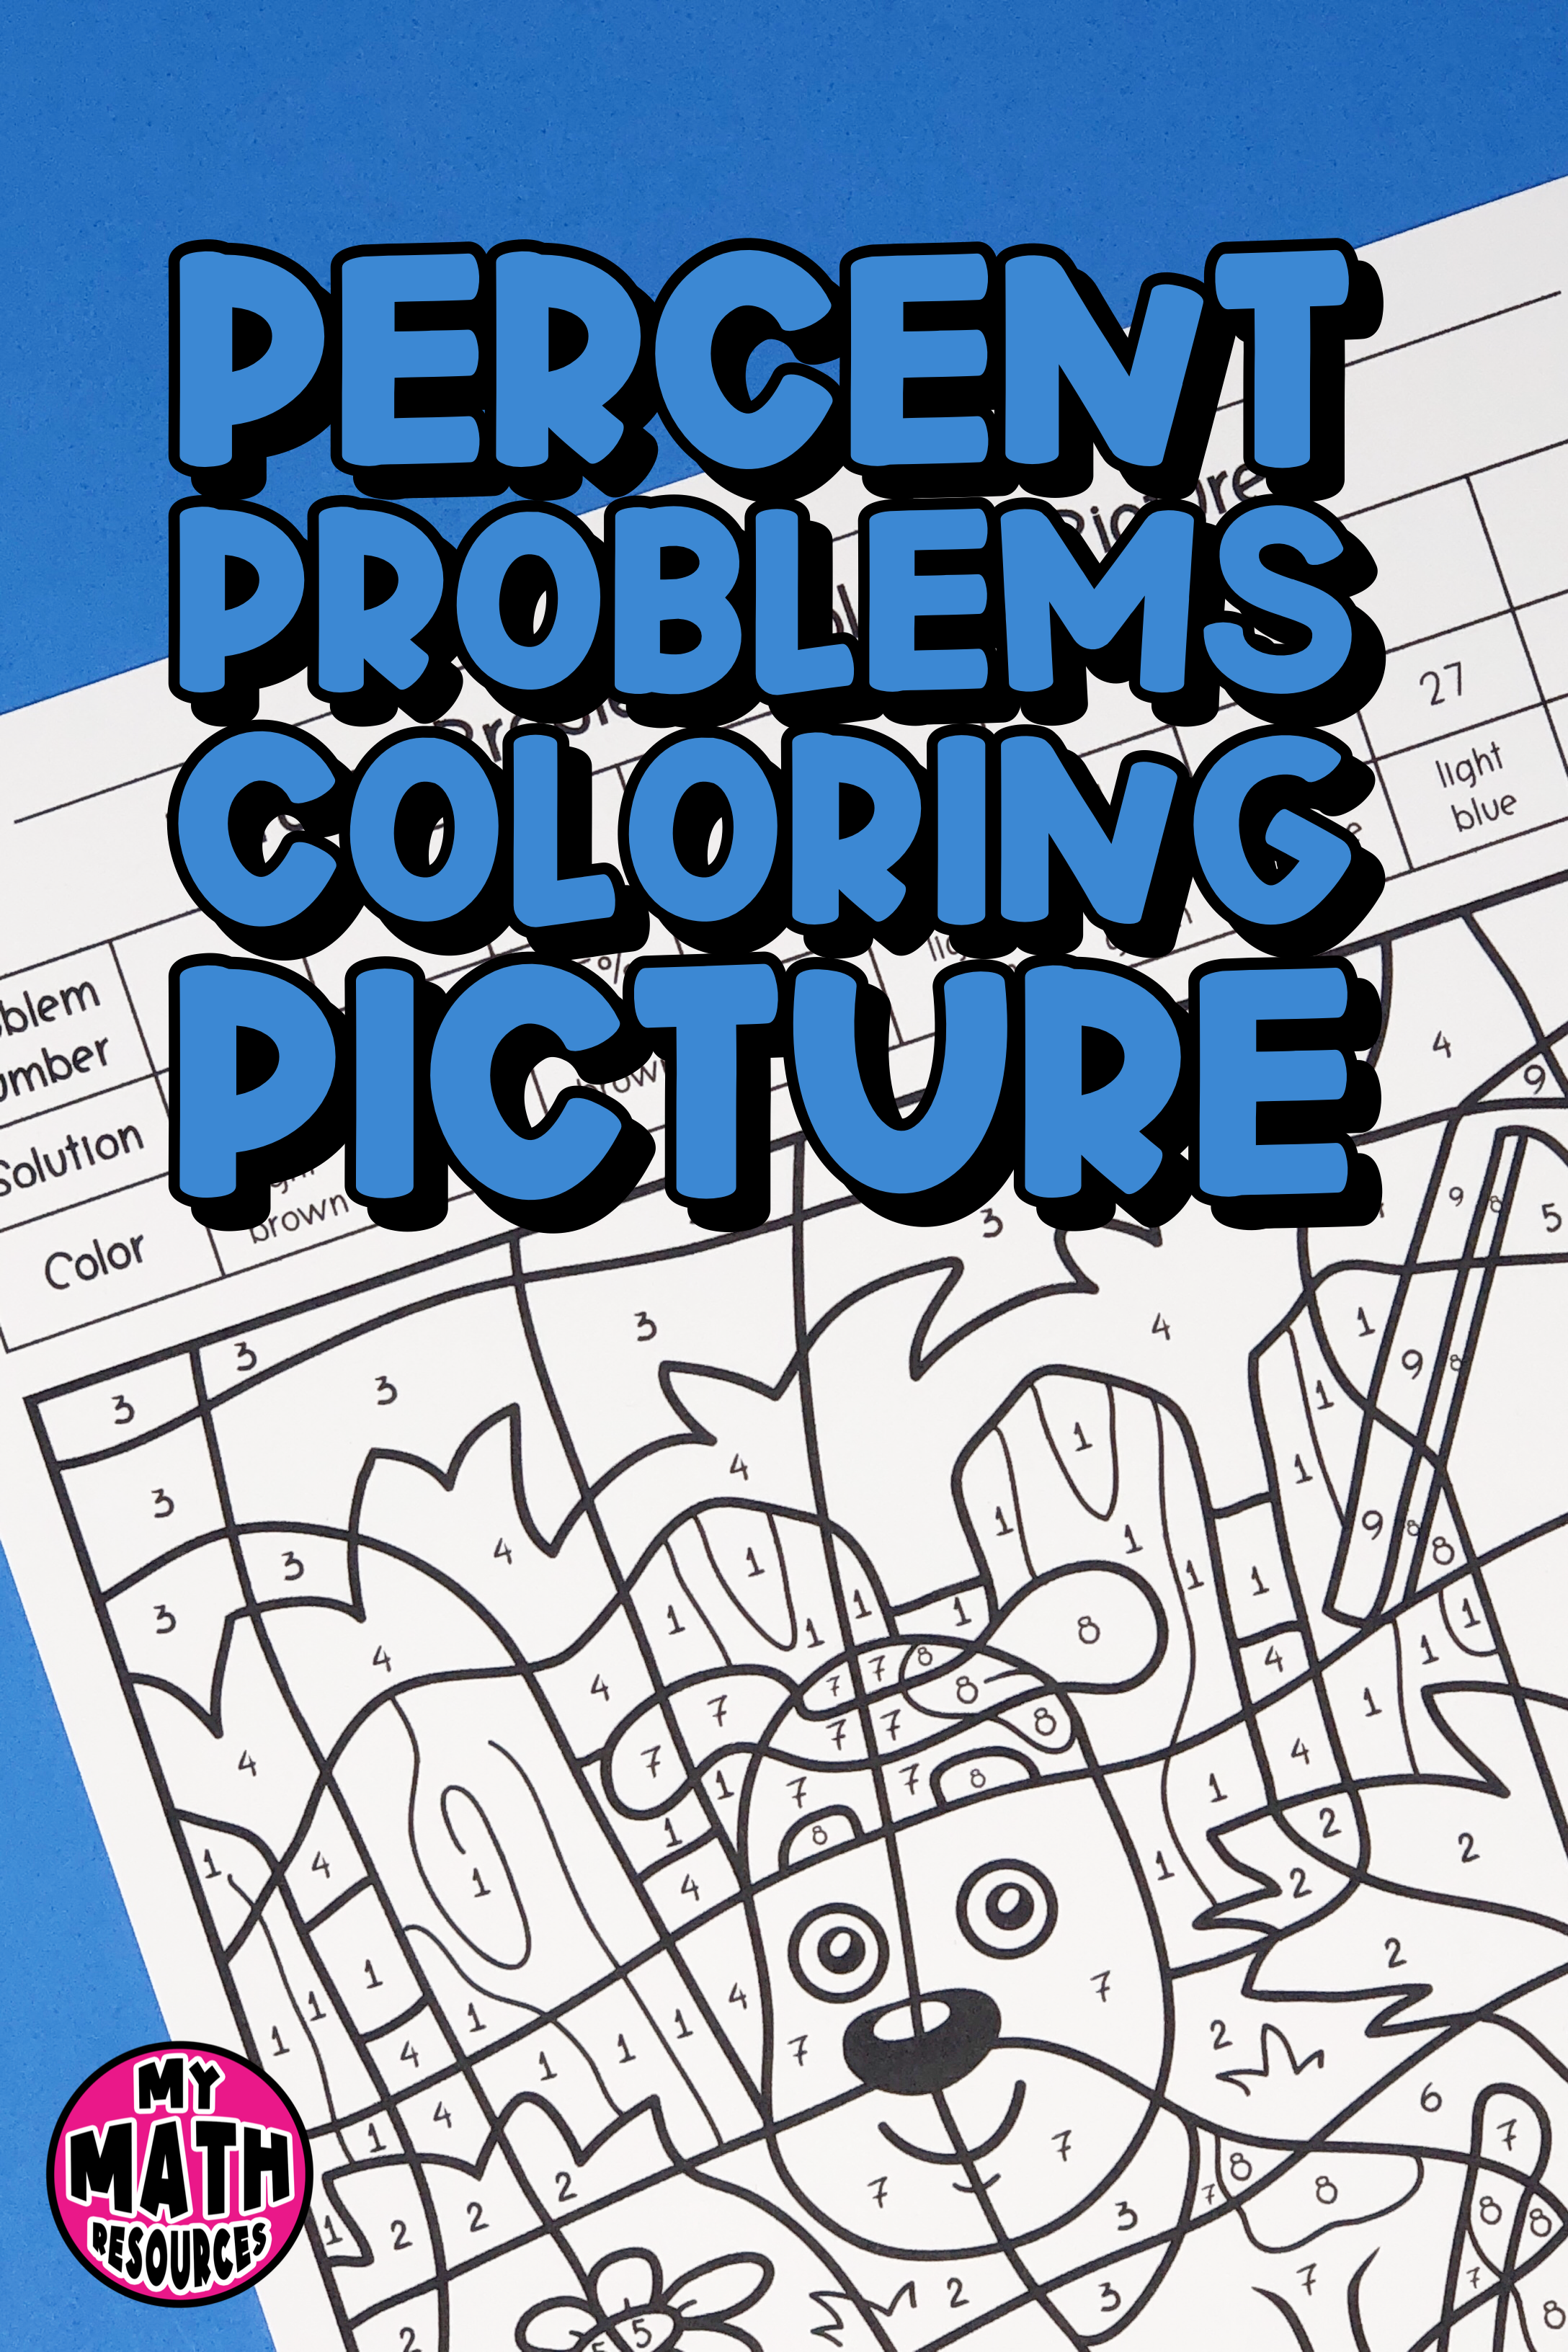 small resolution of My Math Resources - Percent Problems Coloring Picture Worksheet   Middle  school math teacher